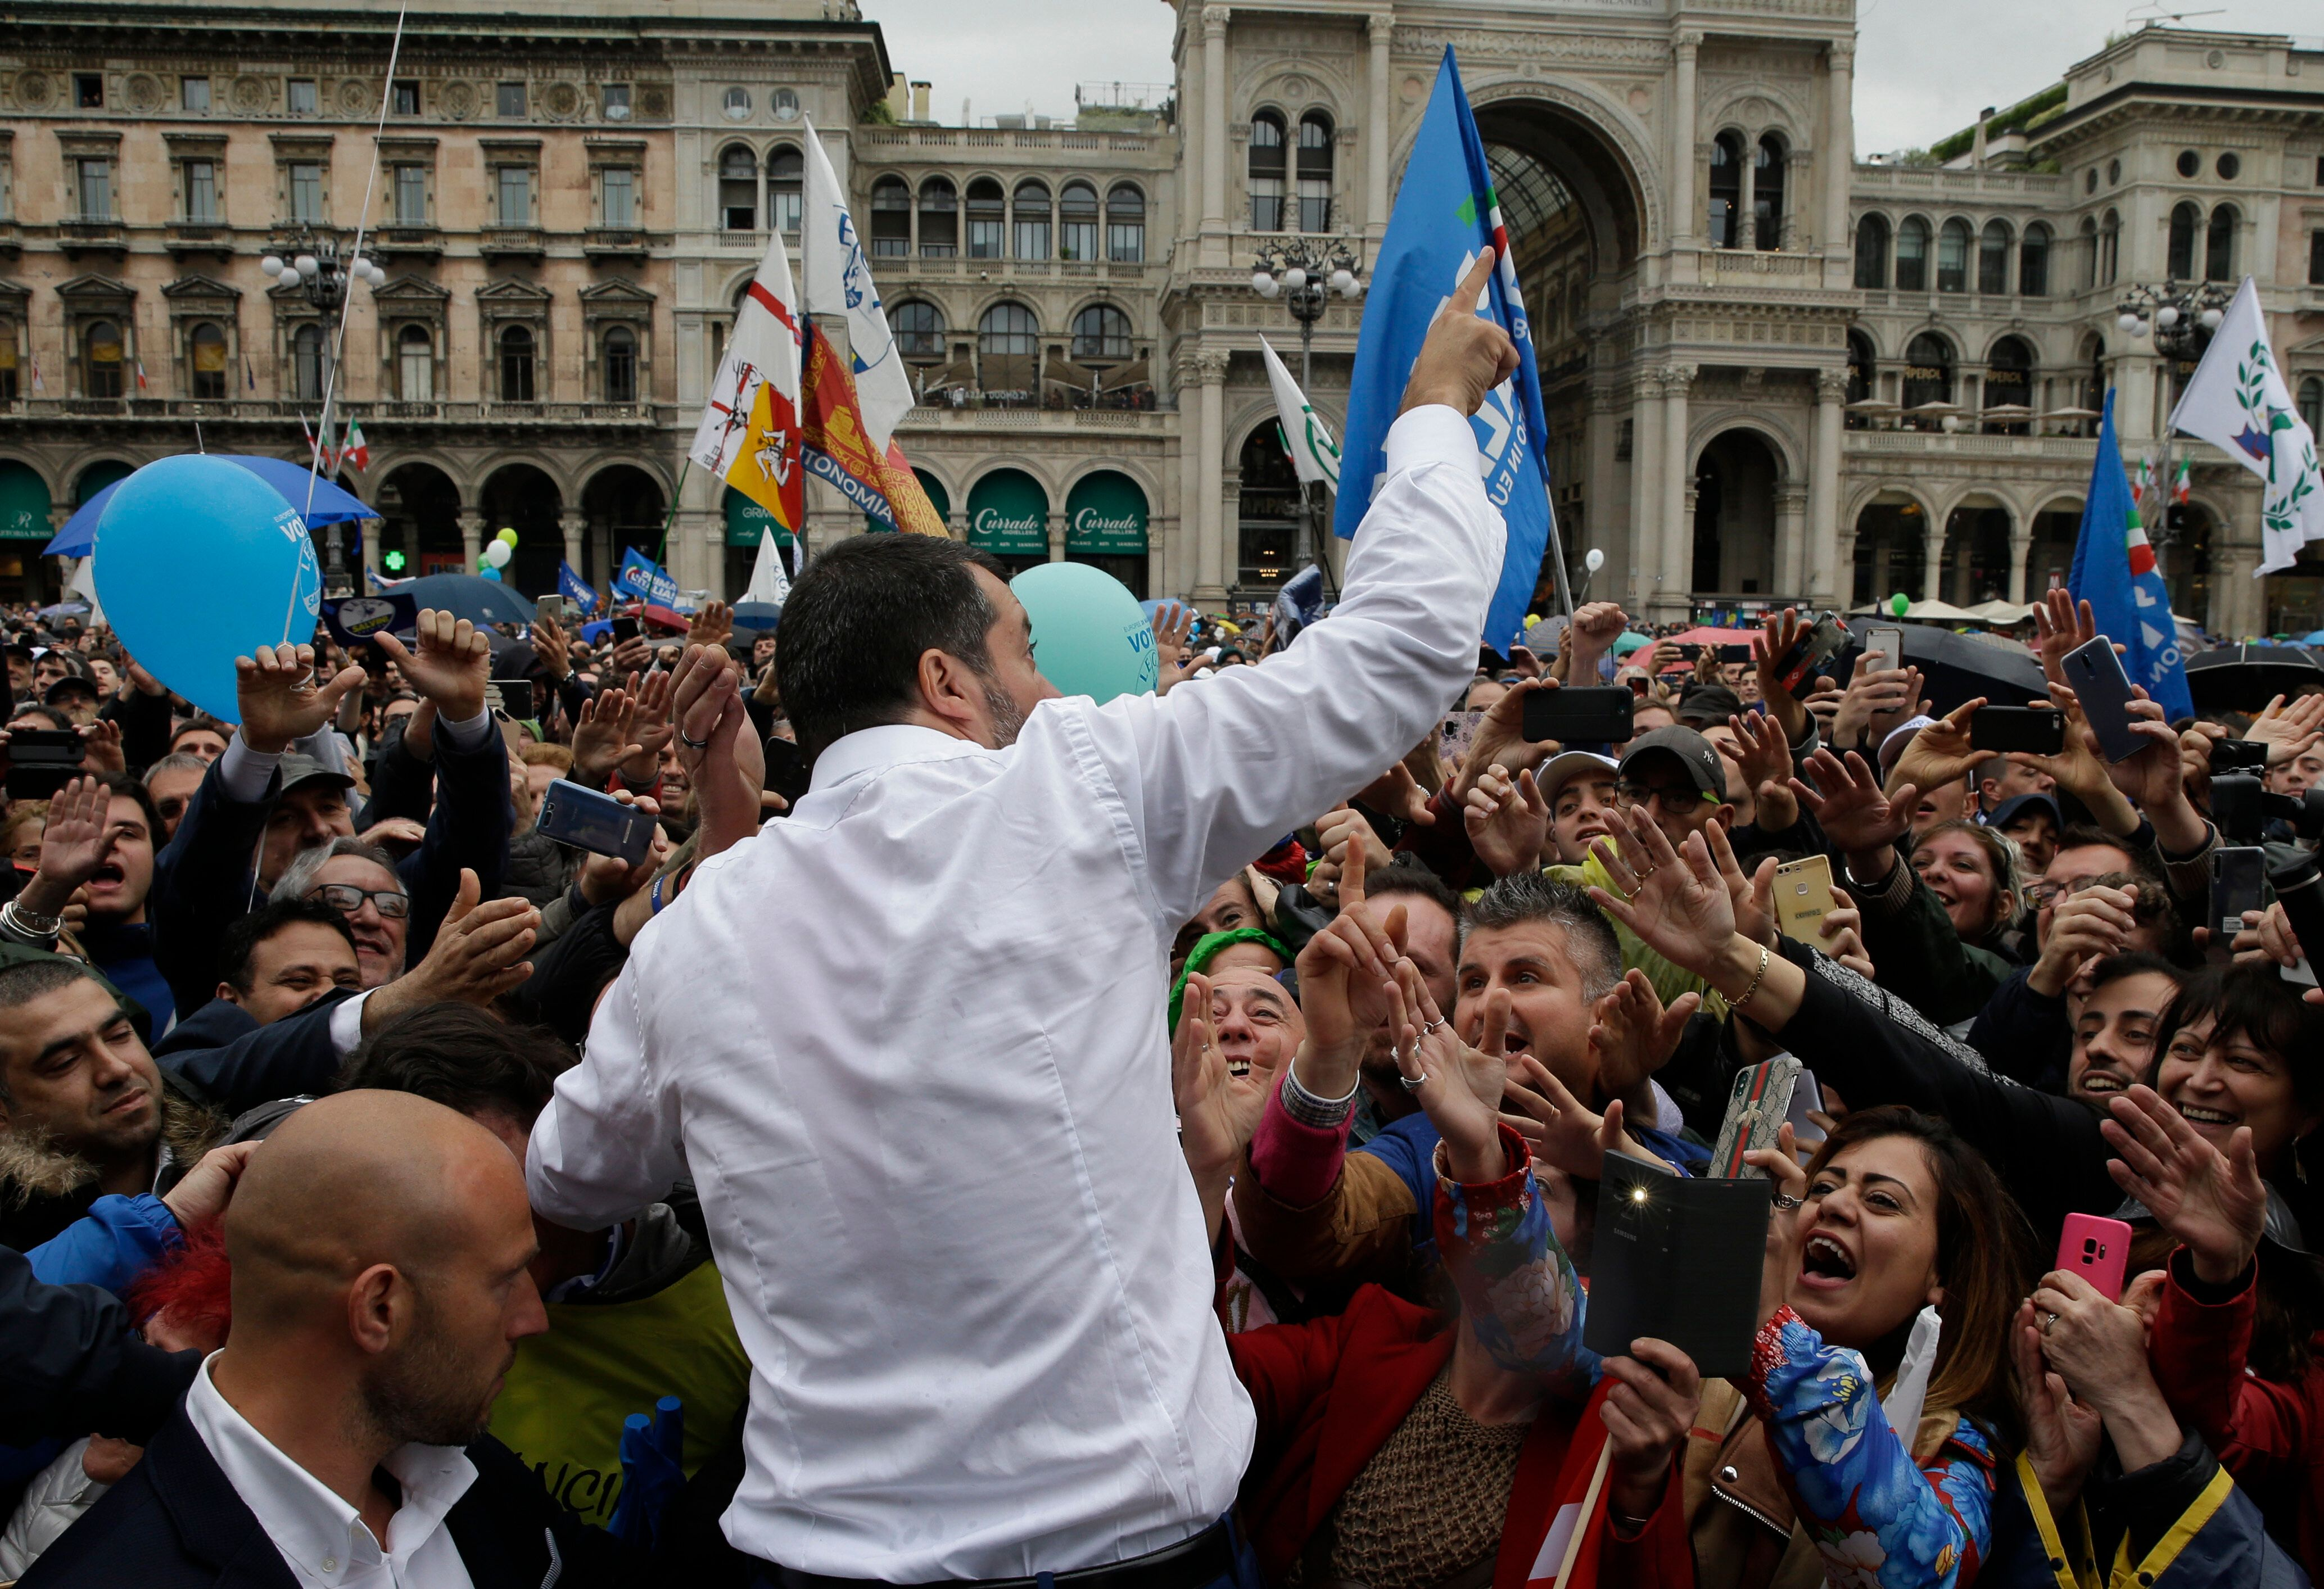 League leader Matteo Salvini, with leaders of other European nationalist parties, organized a rally in Milan, Italy, on May 1